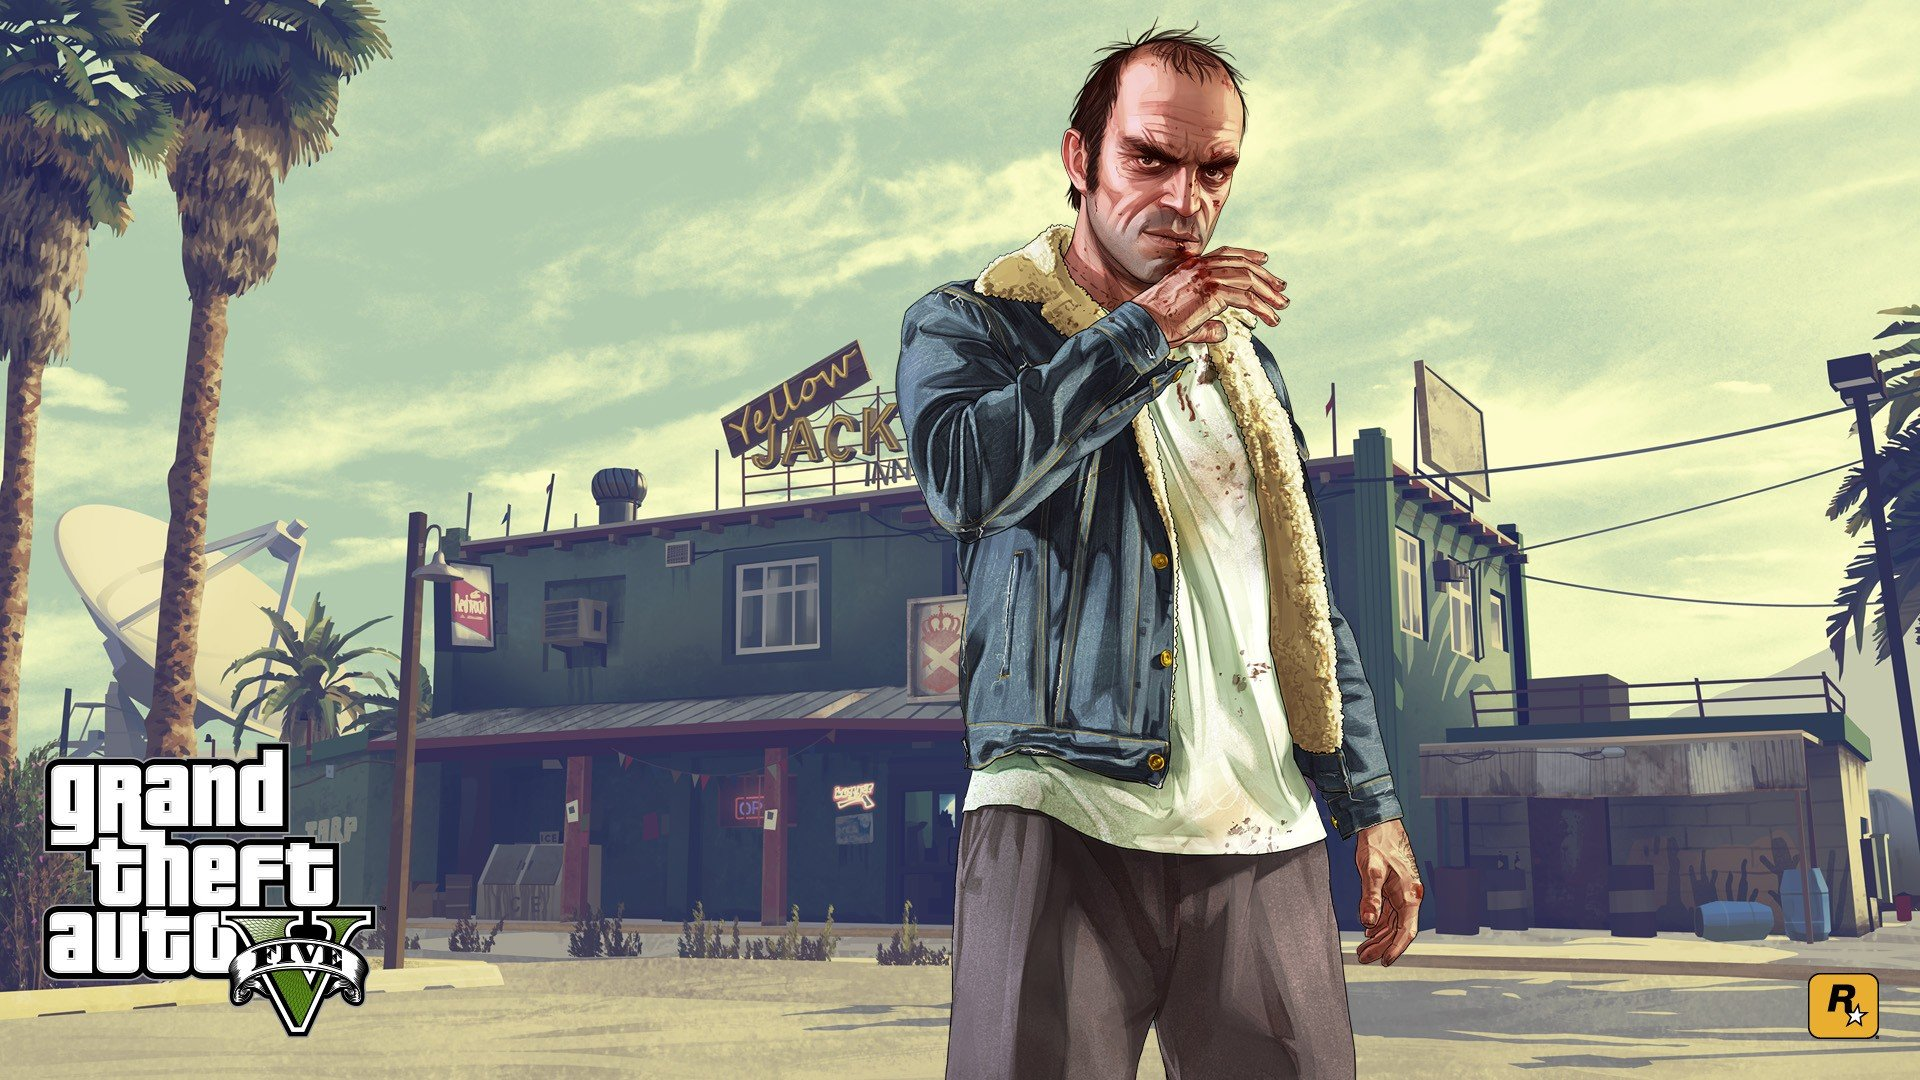 Download Gta Wallpaper Franklin JPG